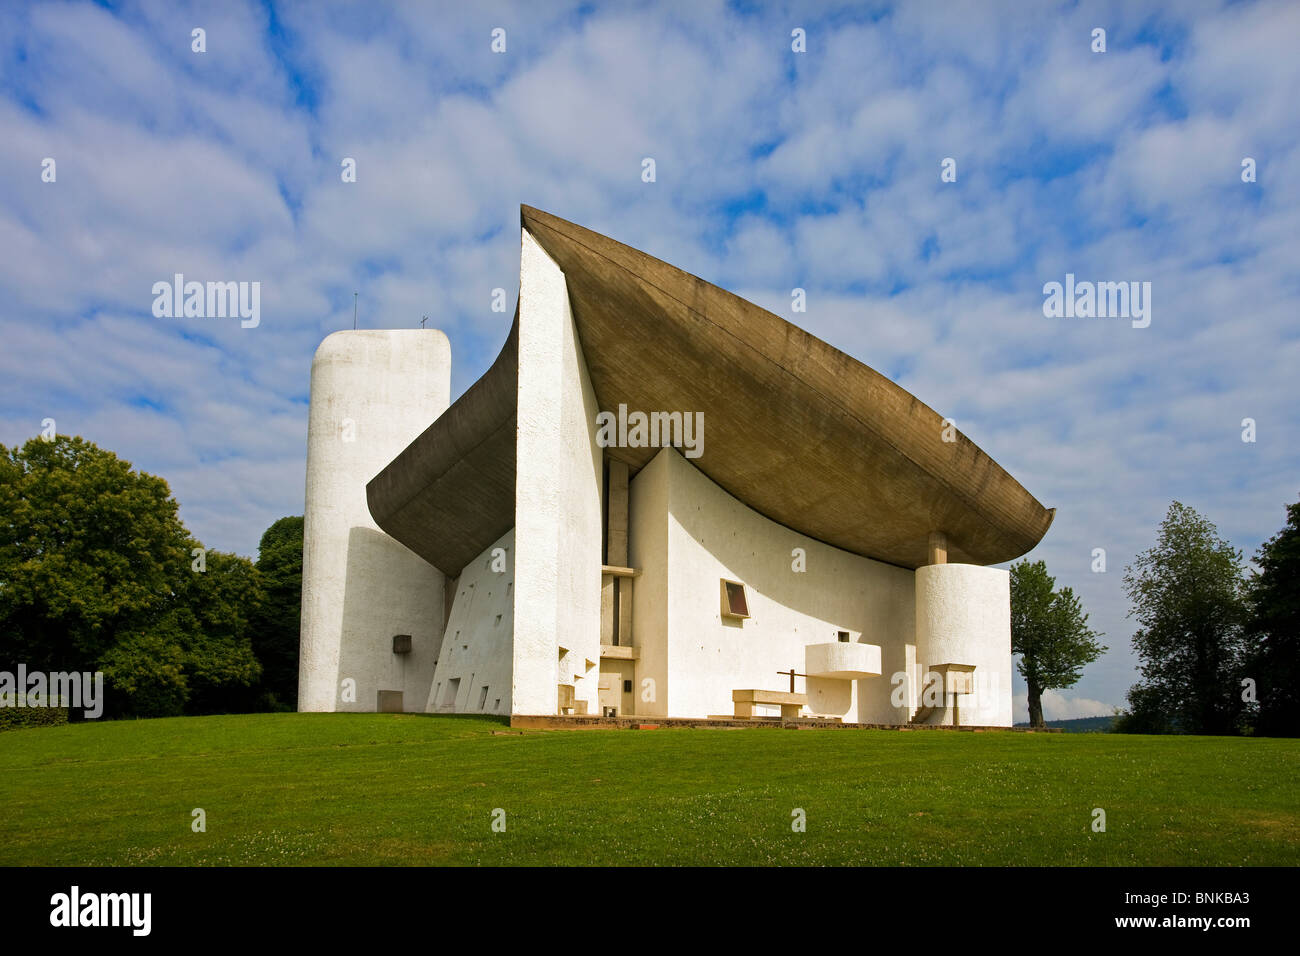 france ronchamp church notre lady you skin architecture le corbusier stock photo 30544139 alamy. Black Bedroom Furniture Sets. Home Design Ideas